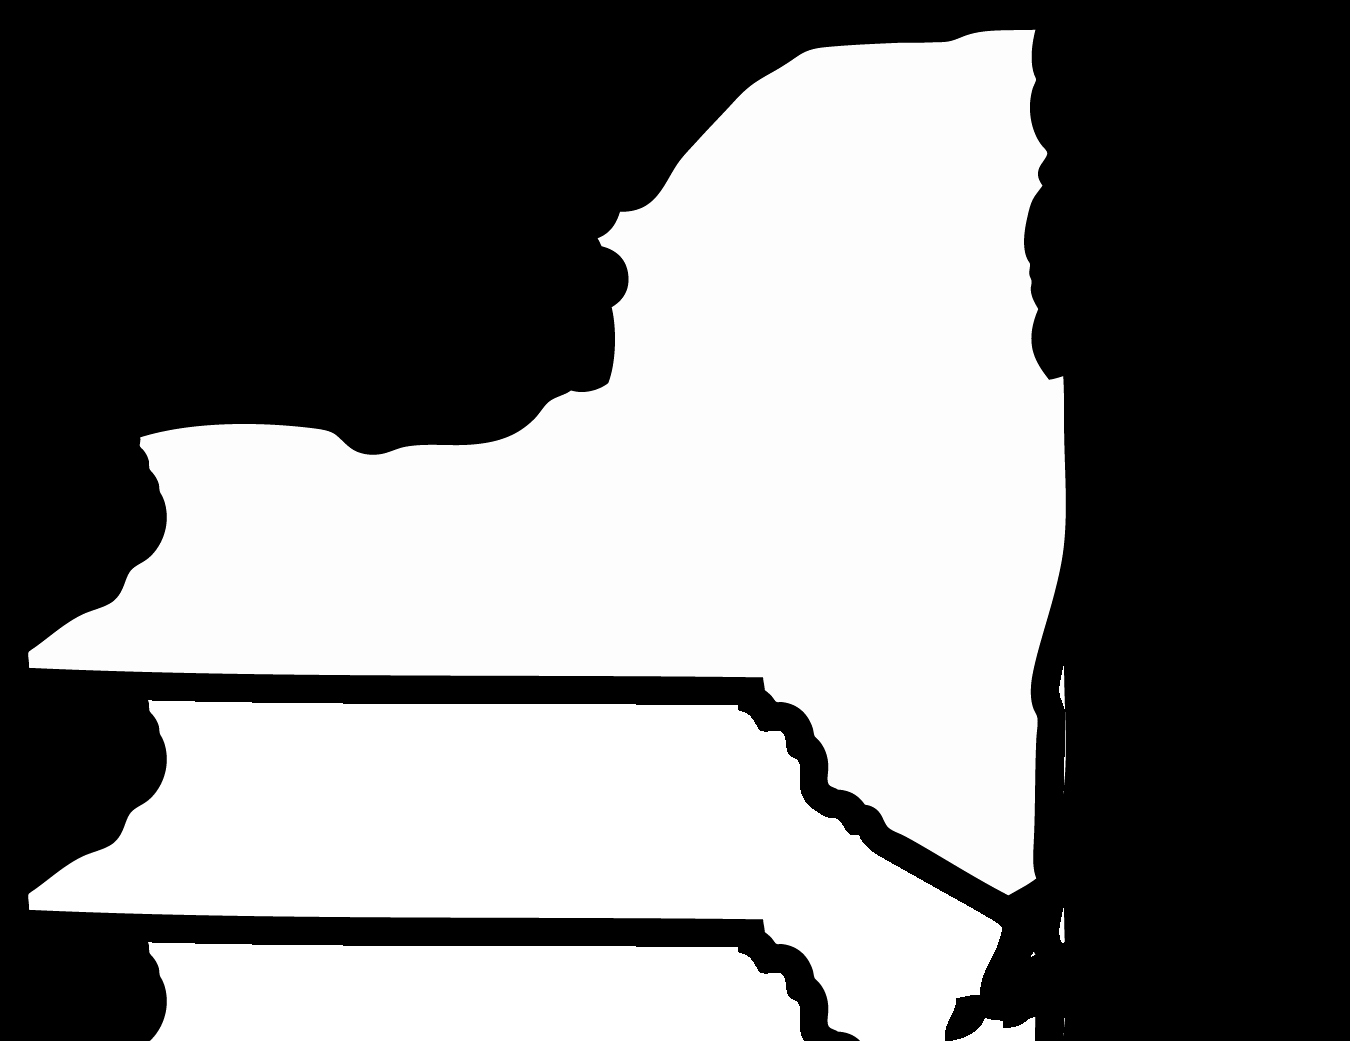 1350x1041 state outlines lovely best s of outline map united states us maps